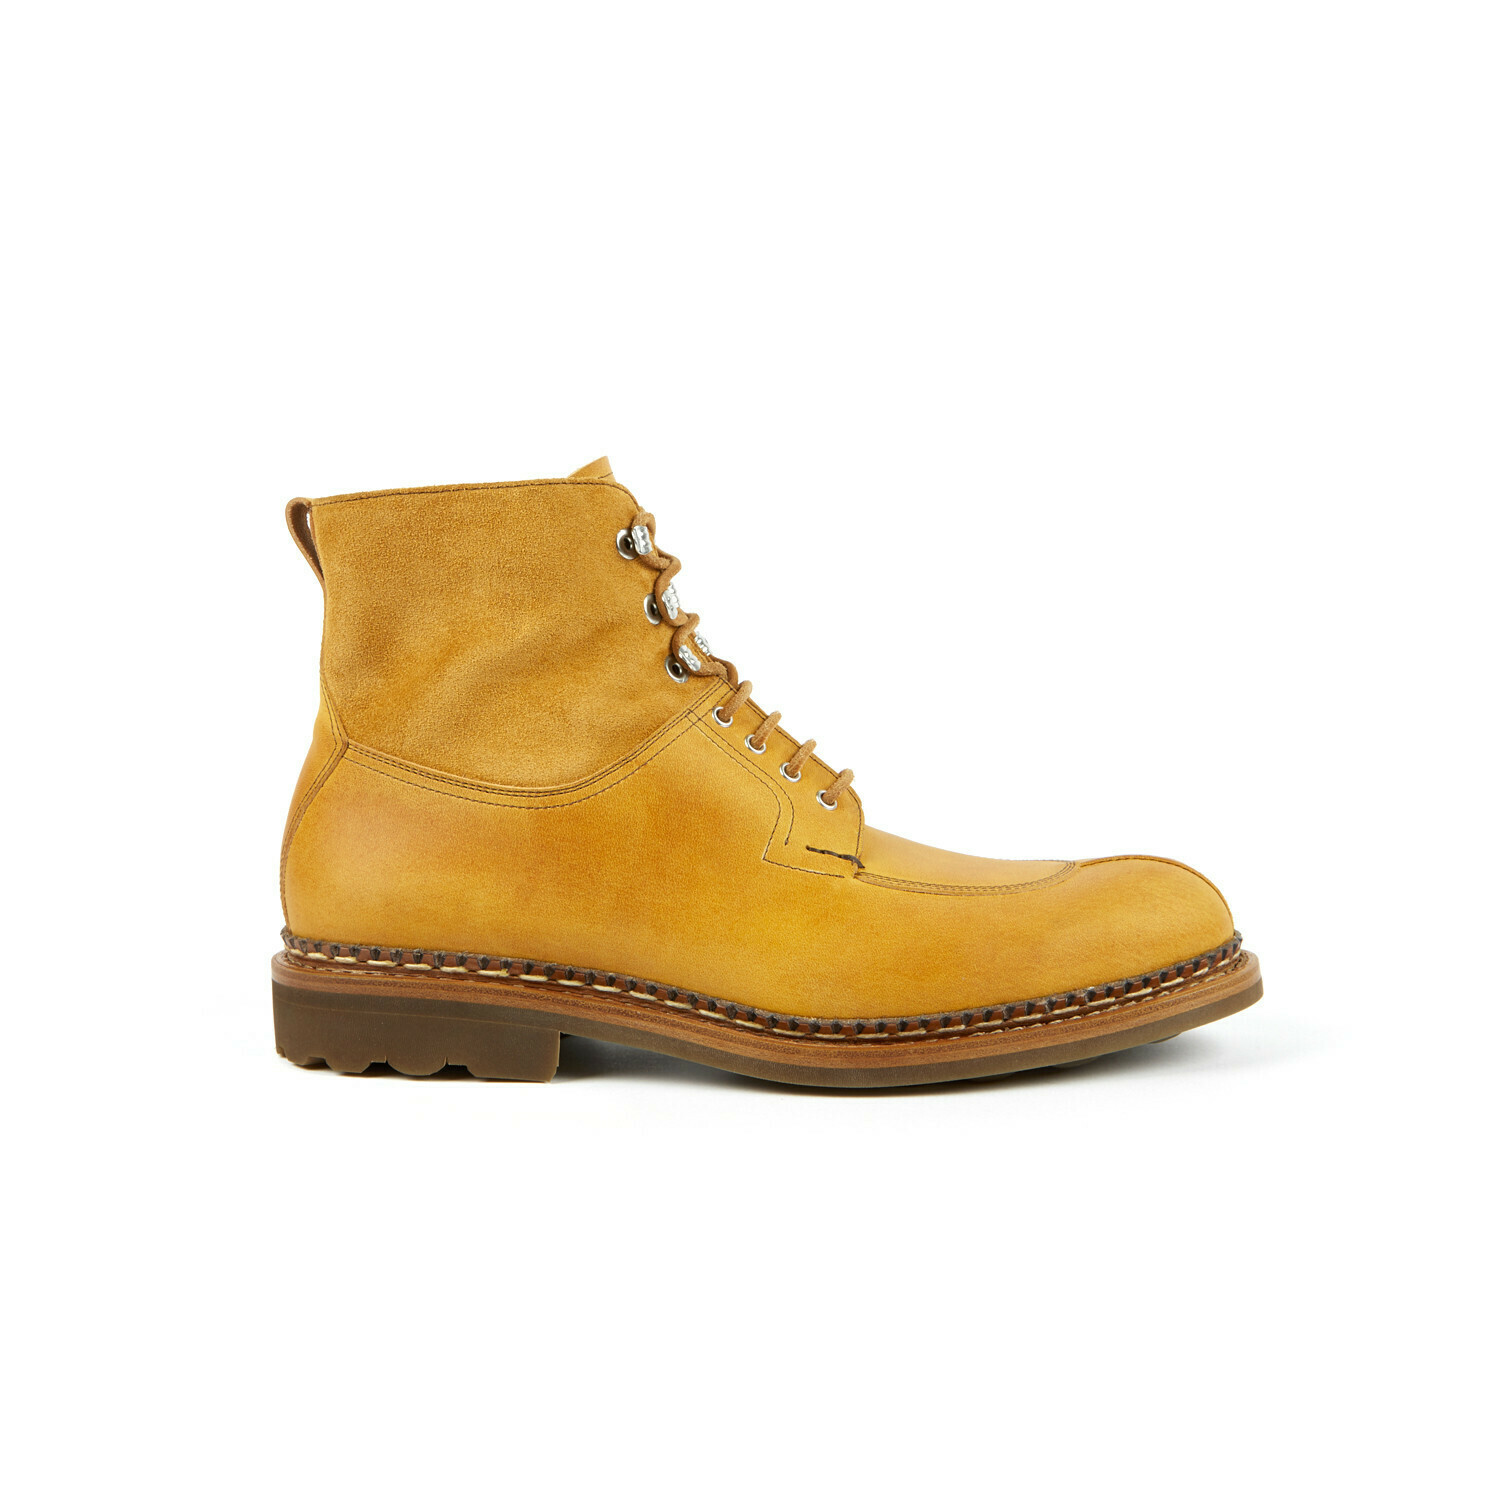 GINKGO Country/Hydrovelours Ocre/Curry Ravel